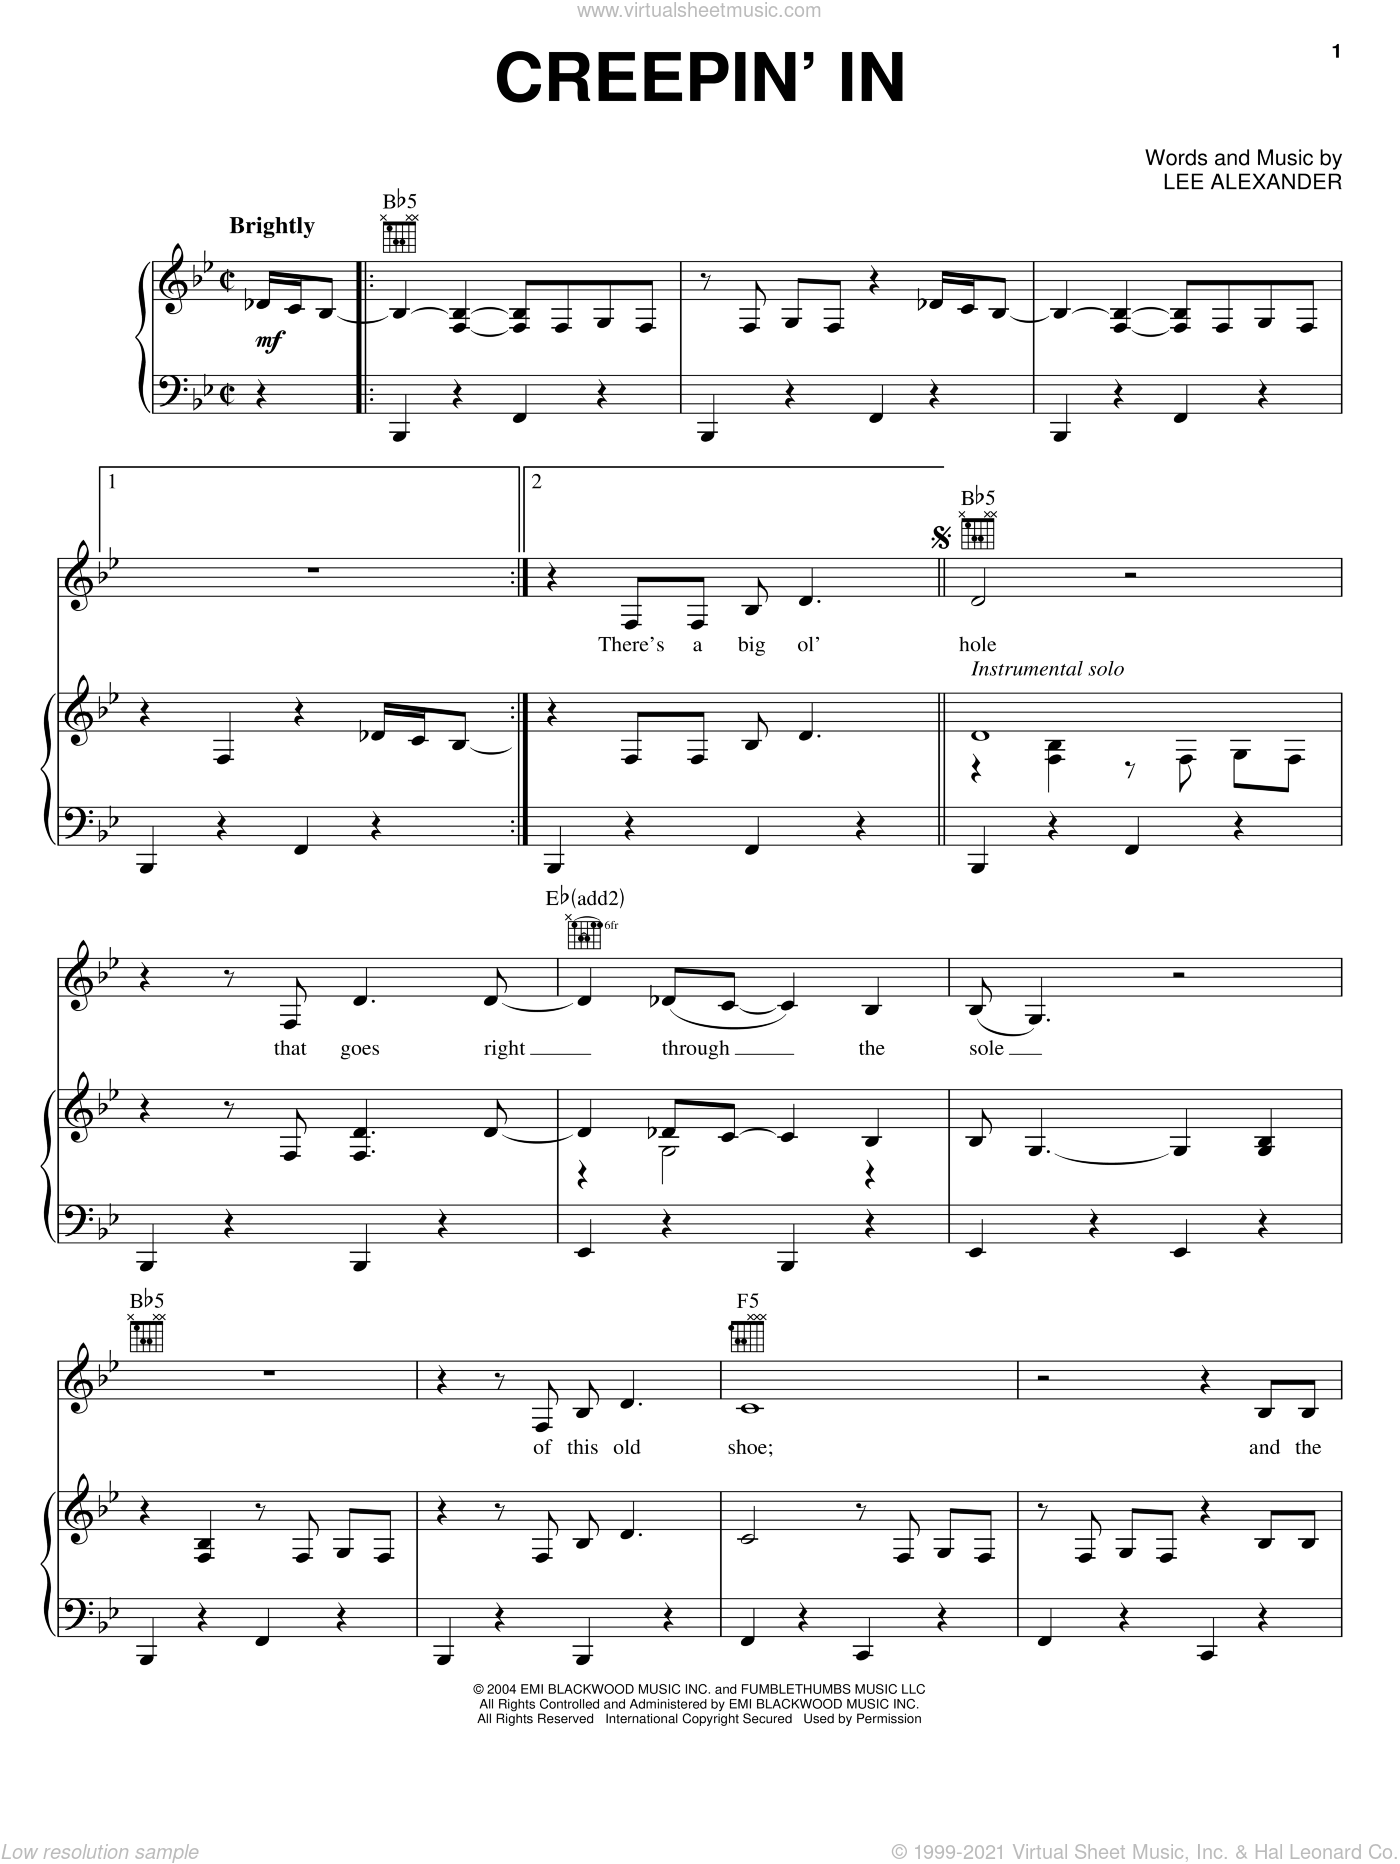 Creepin' In sheet music for voice, piano or guitar by Norah Jones and Lee Alexander, intermediate skill level